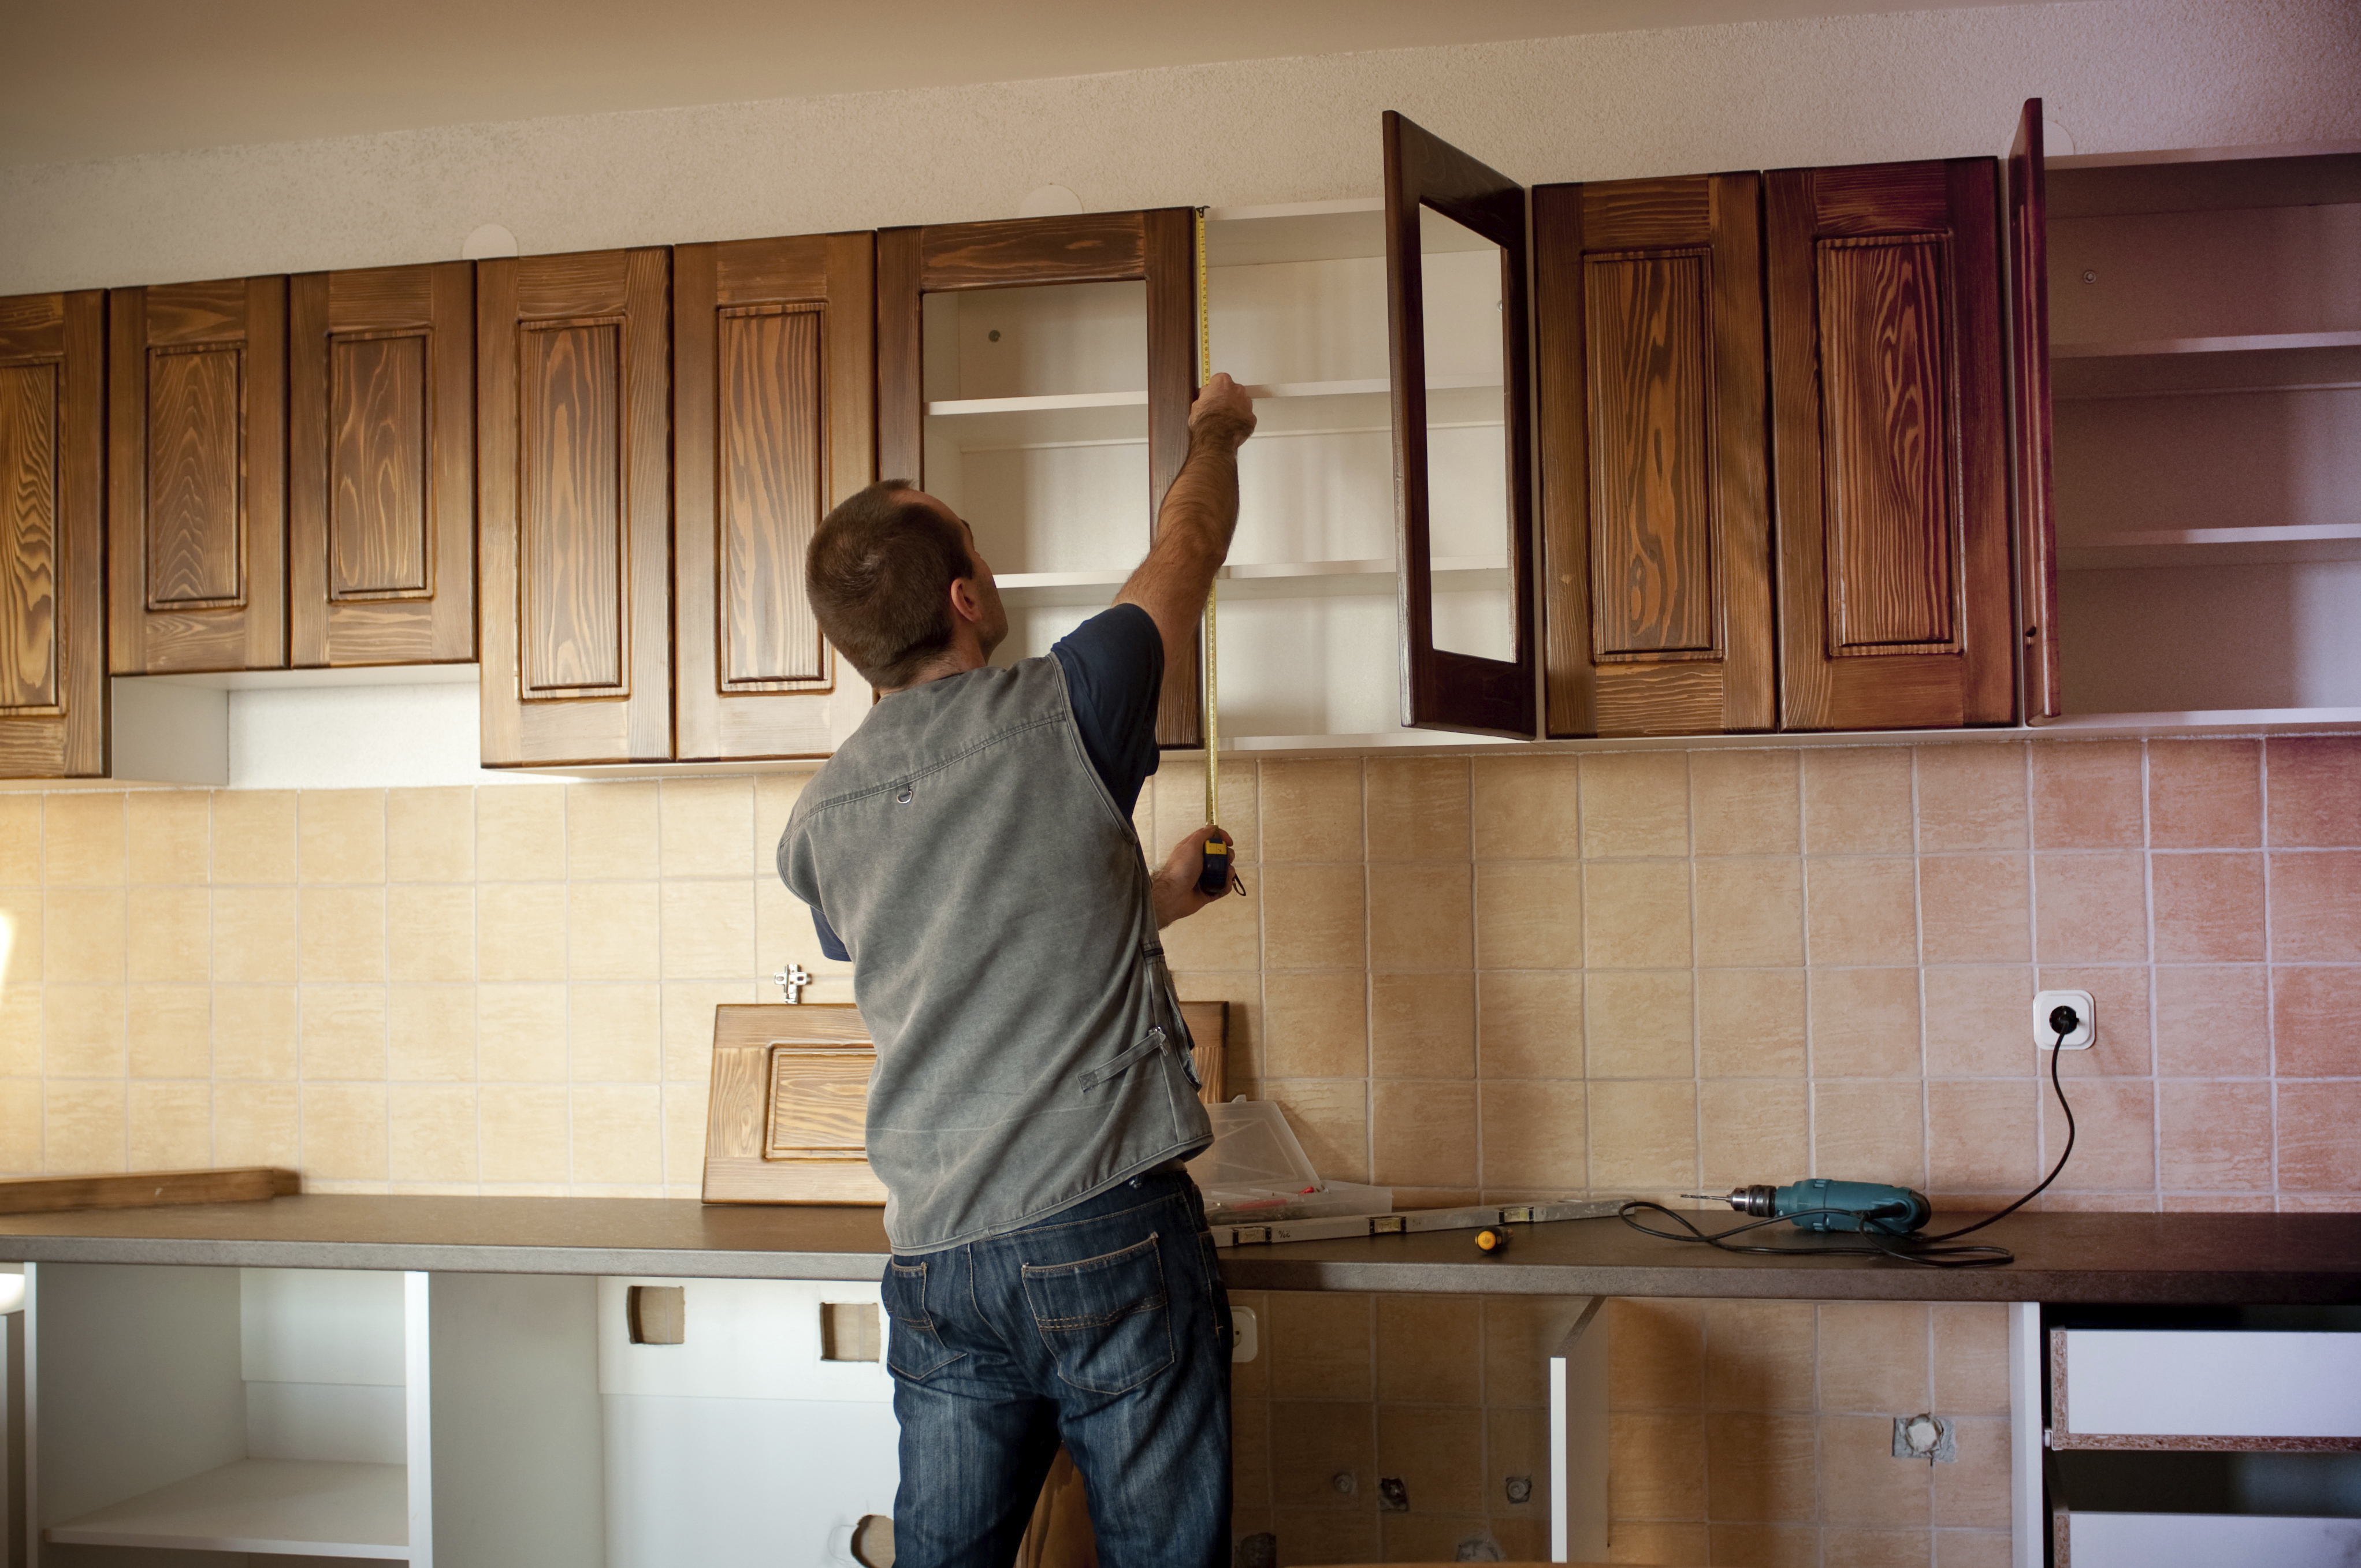 kitchen remodel how to cabinets tampa 13 survival tips get through your it s only a matter of time before you have dream but first must endure the process people often ask what is hardest